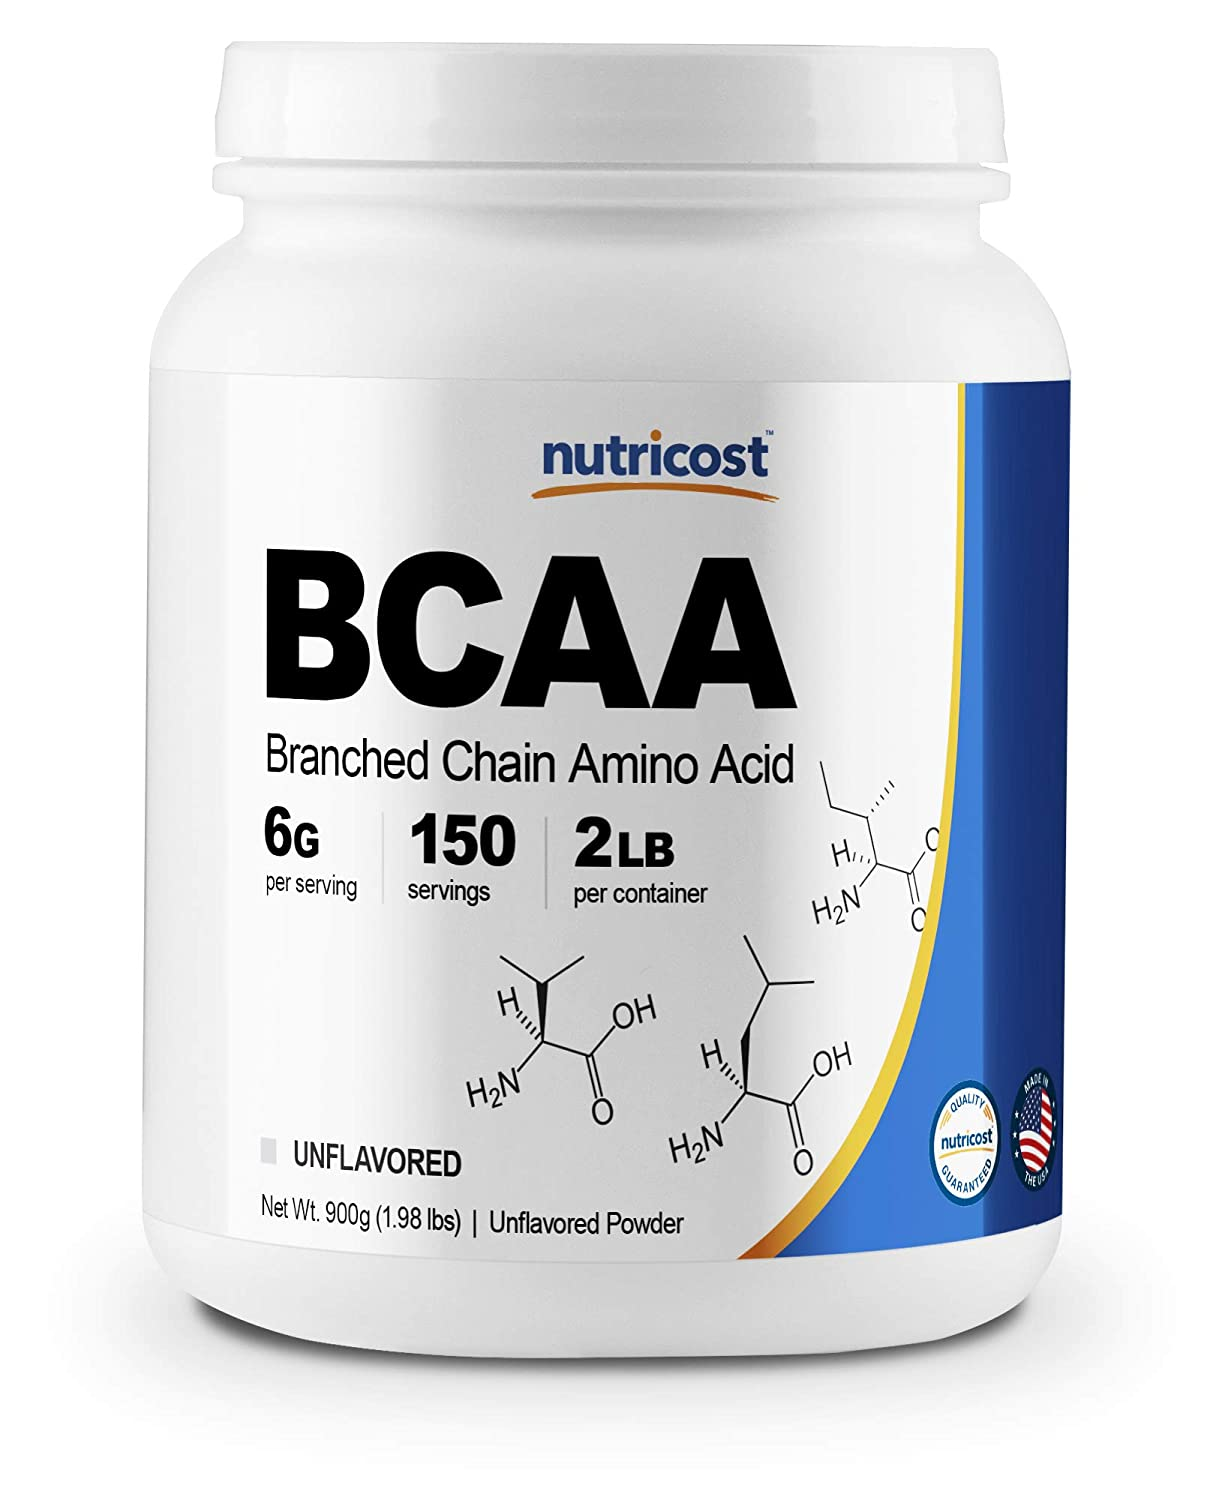 Nutricost BCAA Powder 2 1 1-150 Servings Unflavored